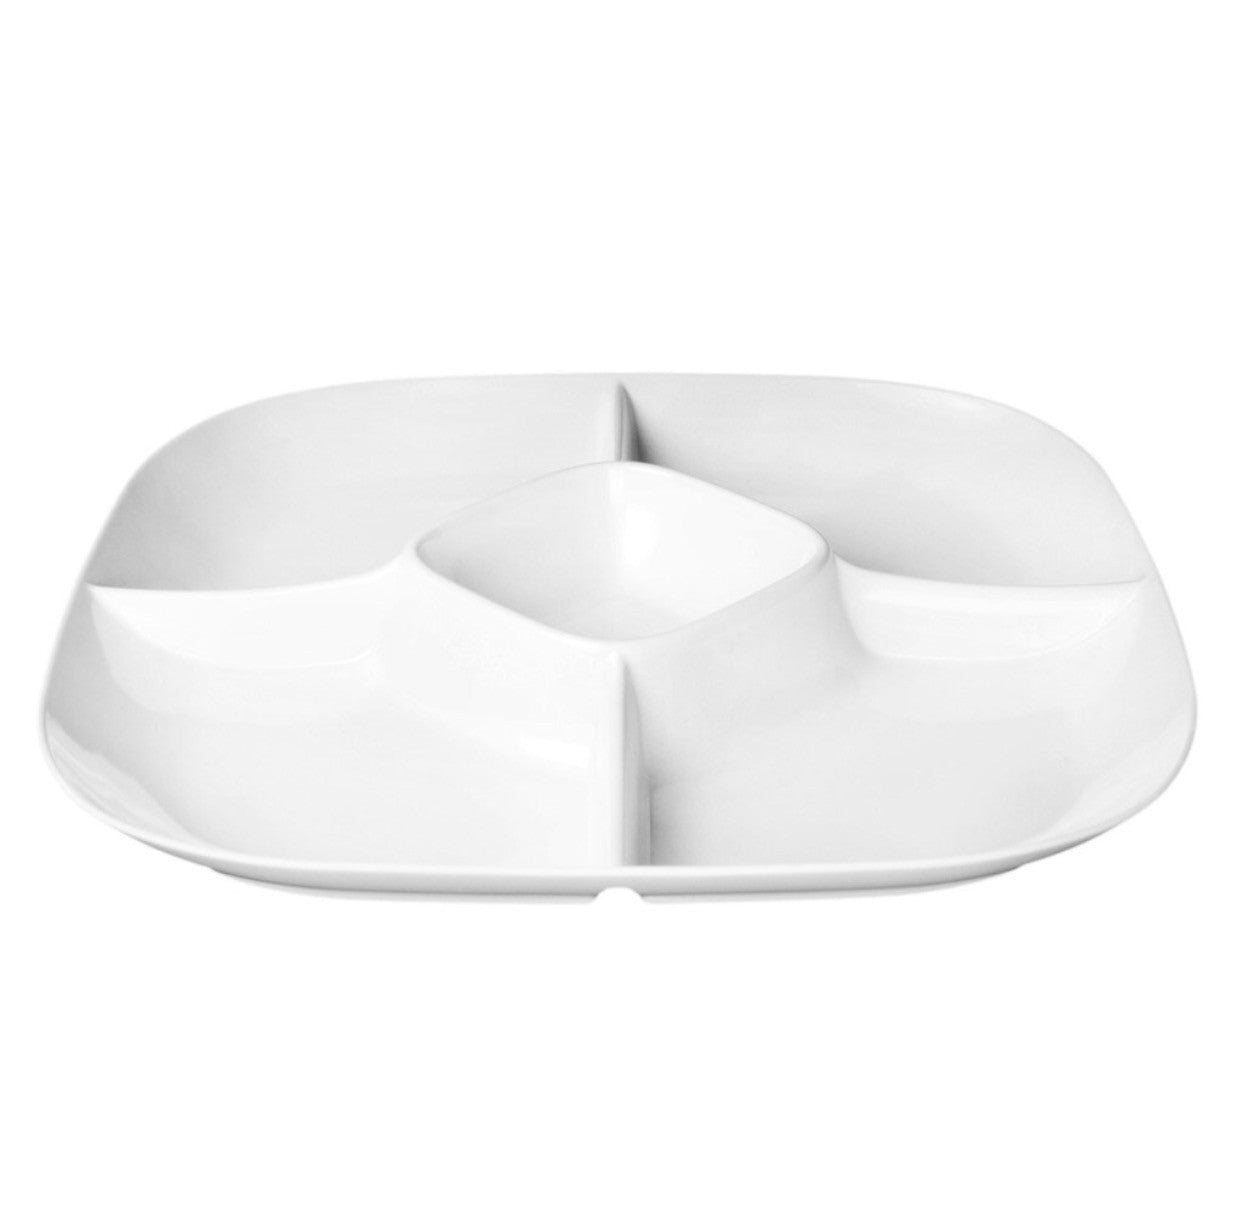 Melamine Passion Divided Section Tray (6 Pack), Melamine - eKitchenary